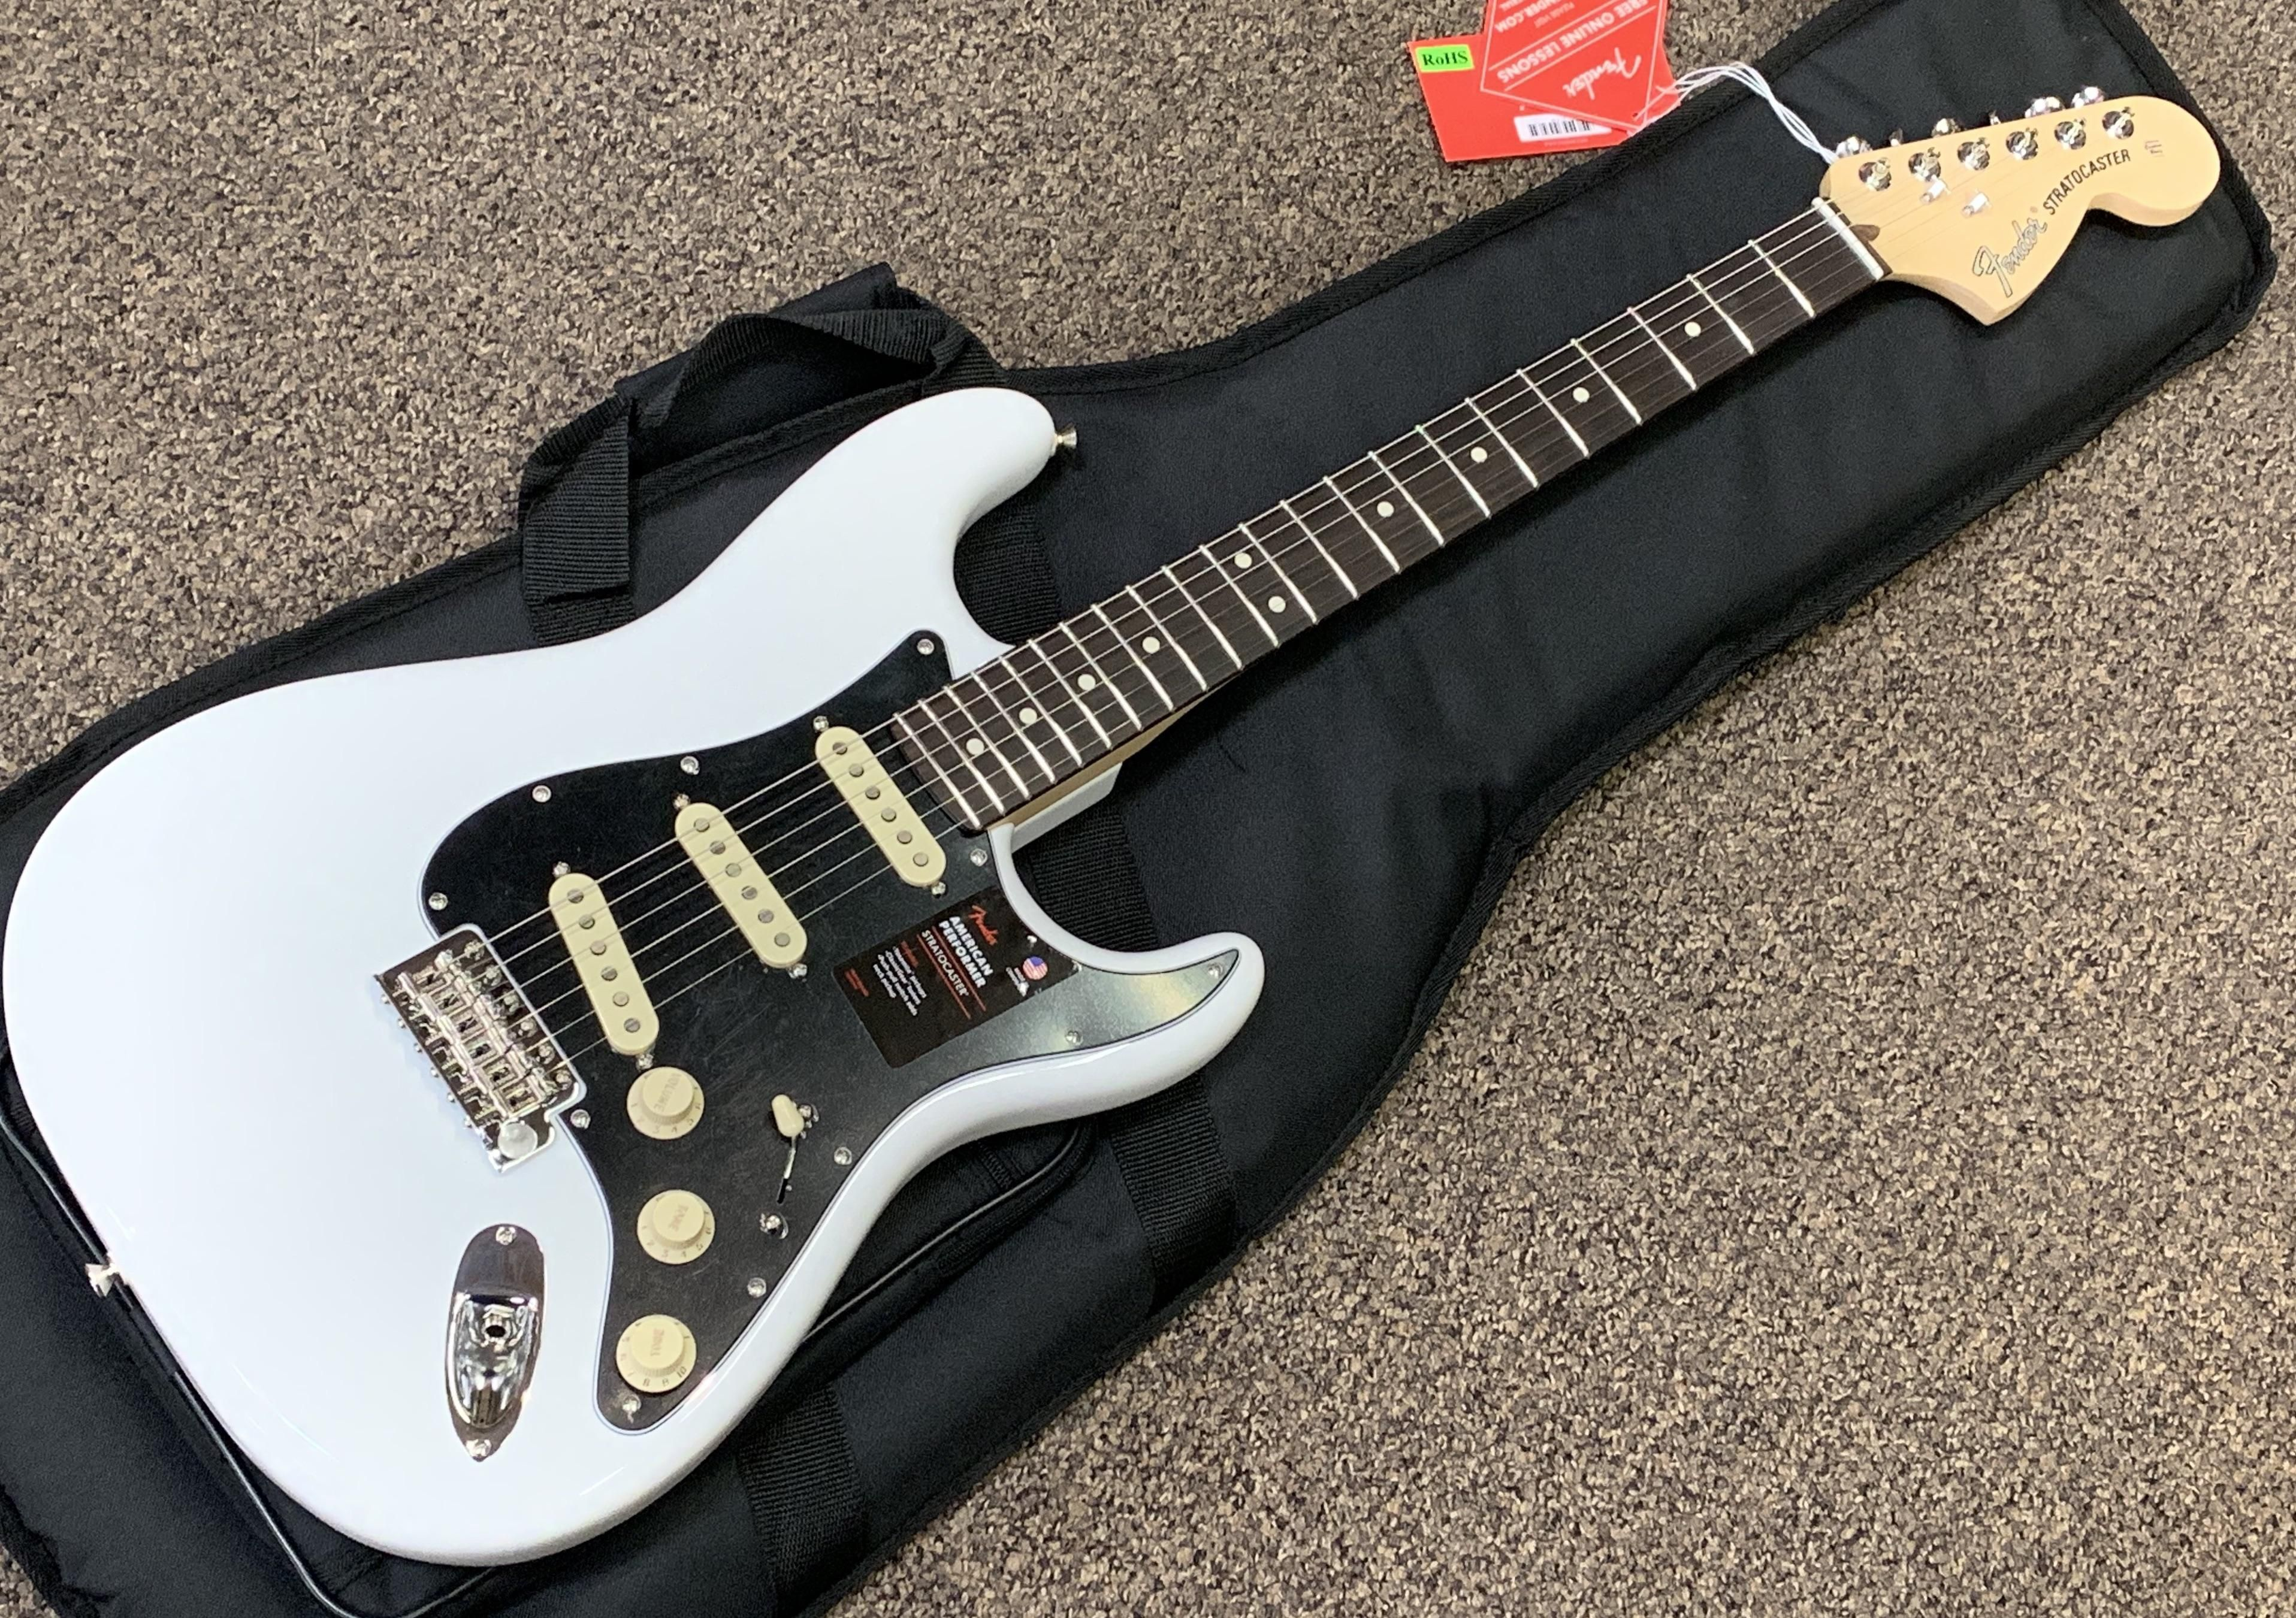 Just arrived in shop today 2019 Fender American Performer